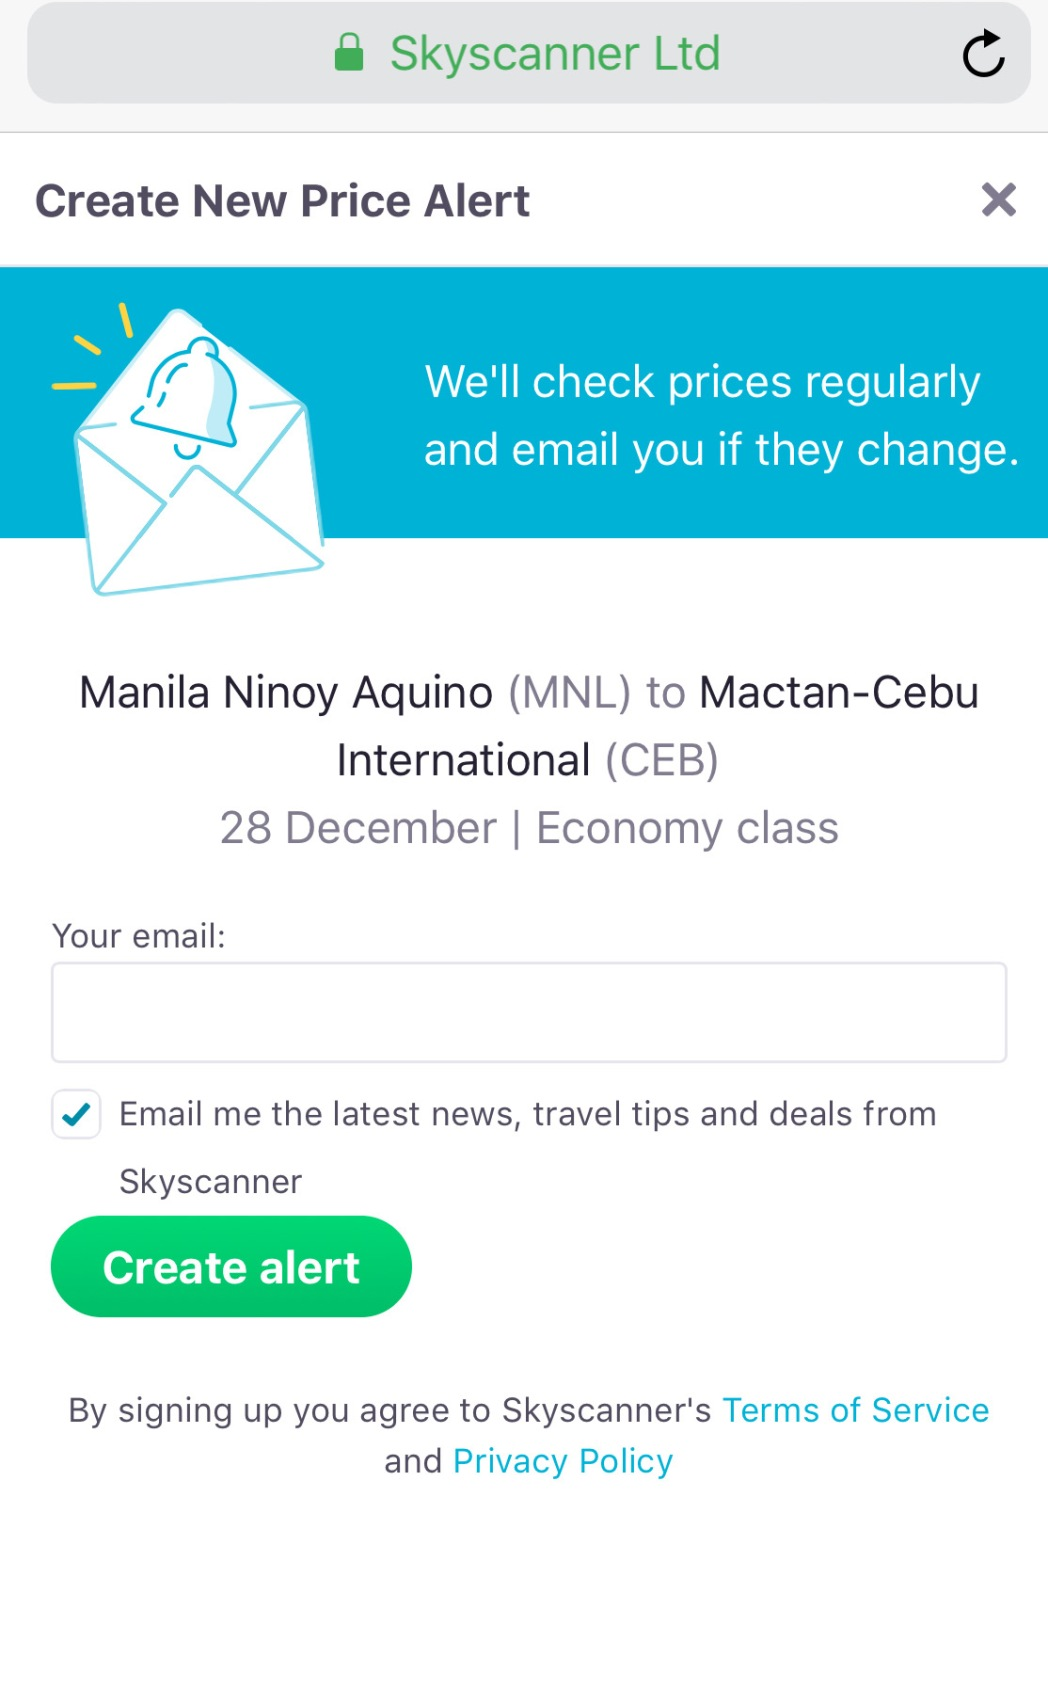 A screenshot of Skyscanner's price alert feature